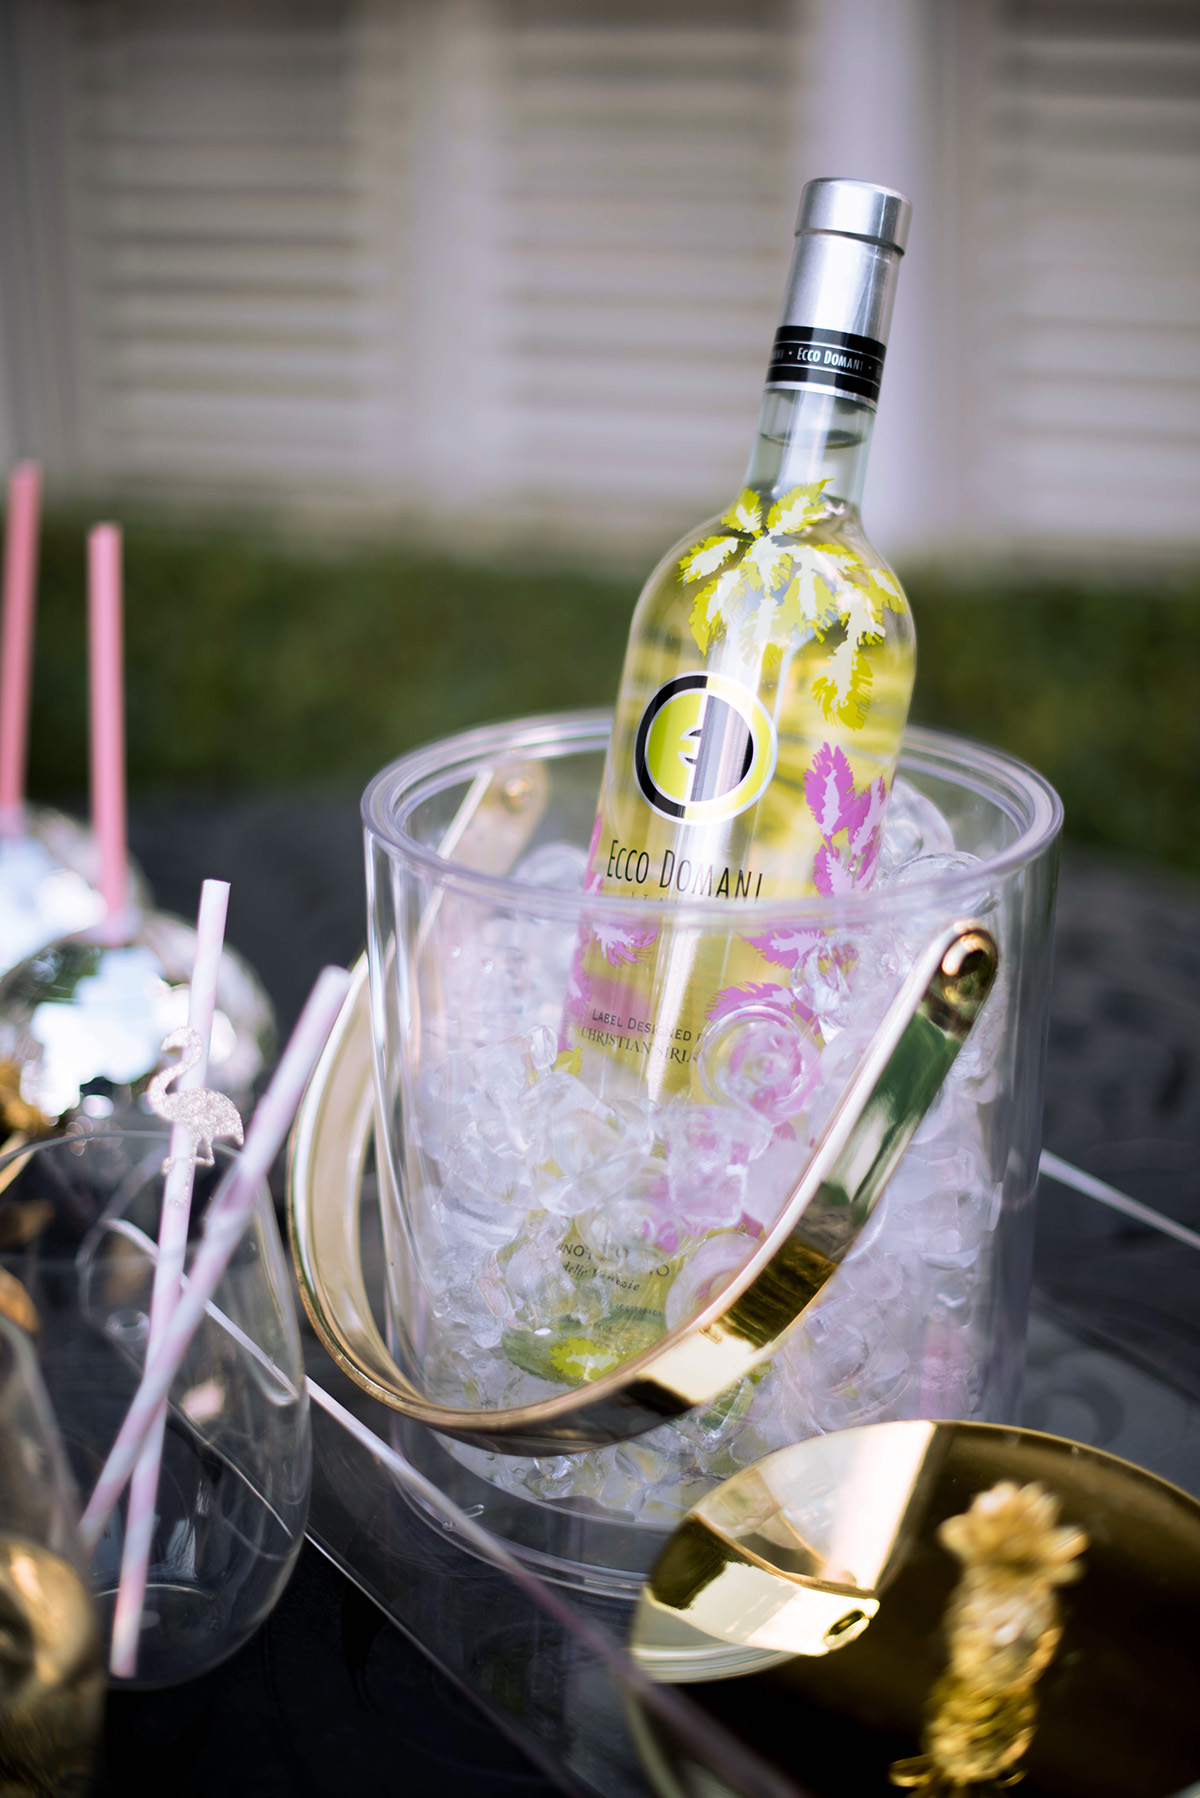 Instantly Upgrade Your Summer Moments | Summer Wine Cocktails | Ecco Domani Wines x Christian Siriano